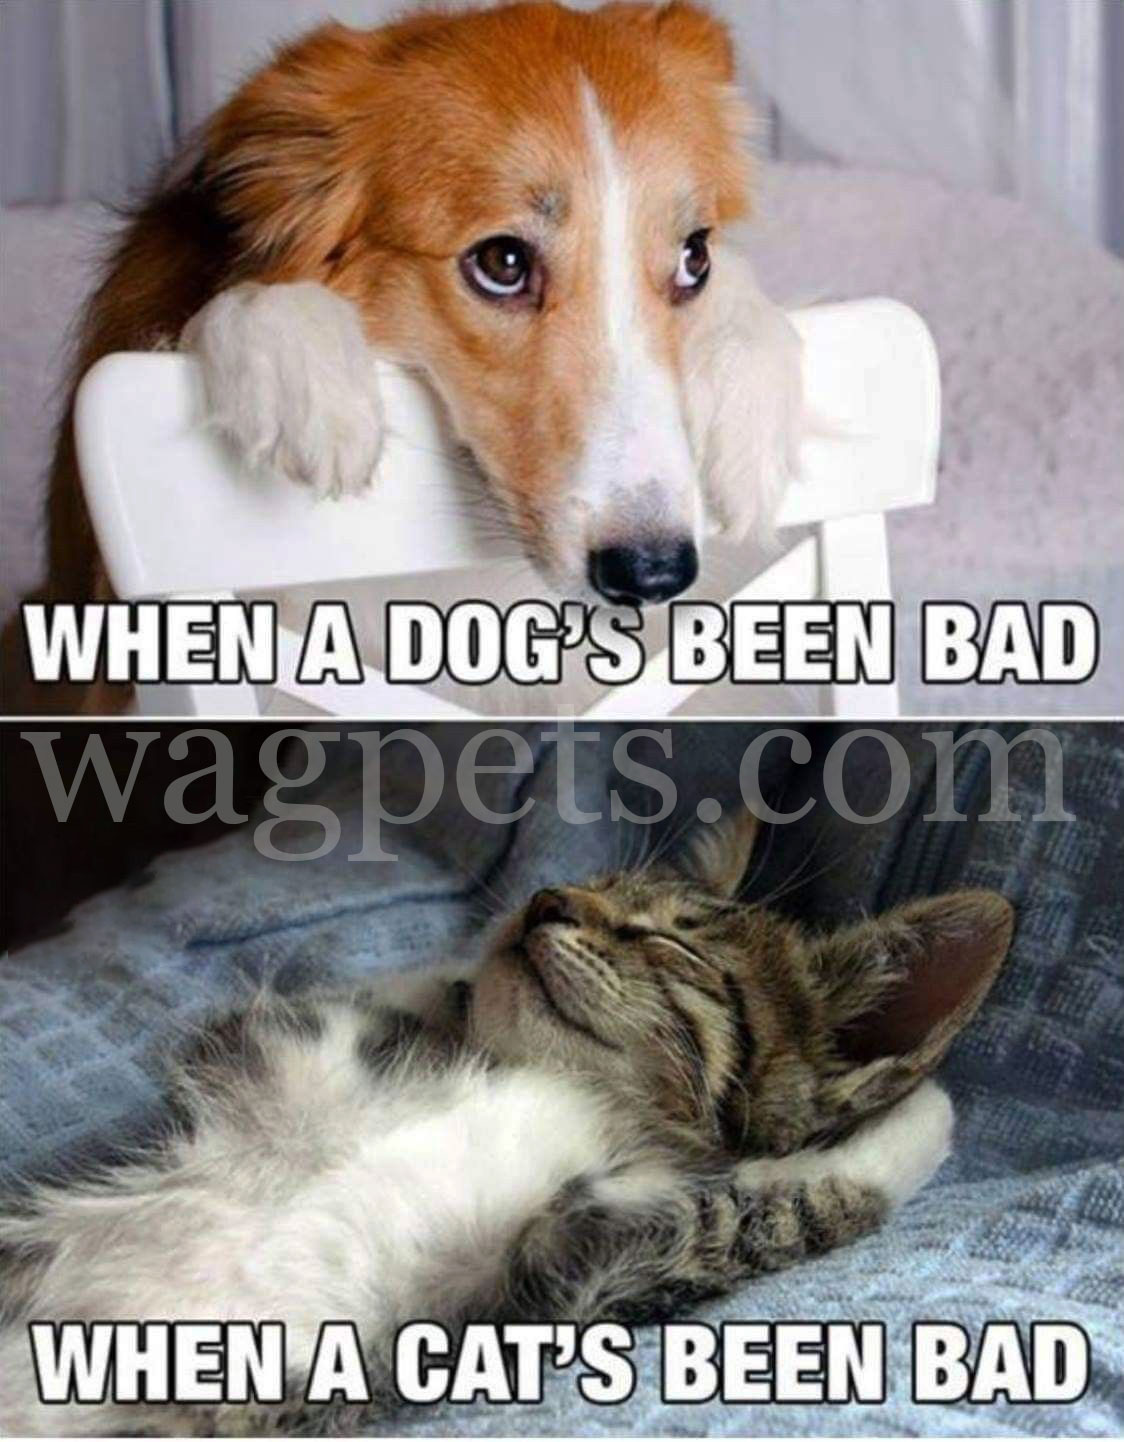 When a dog's been bed. When a cat's been bed.